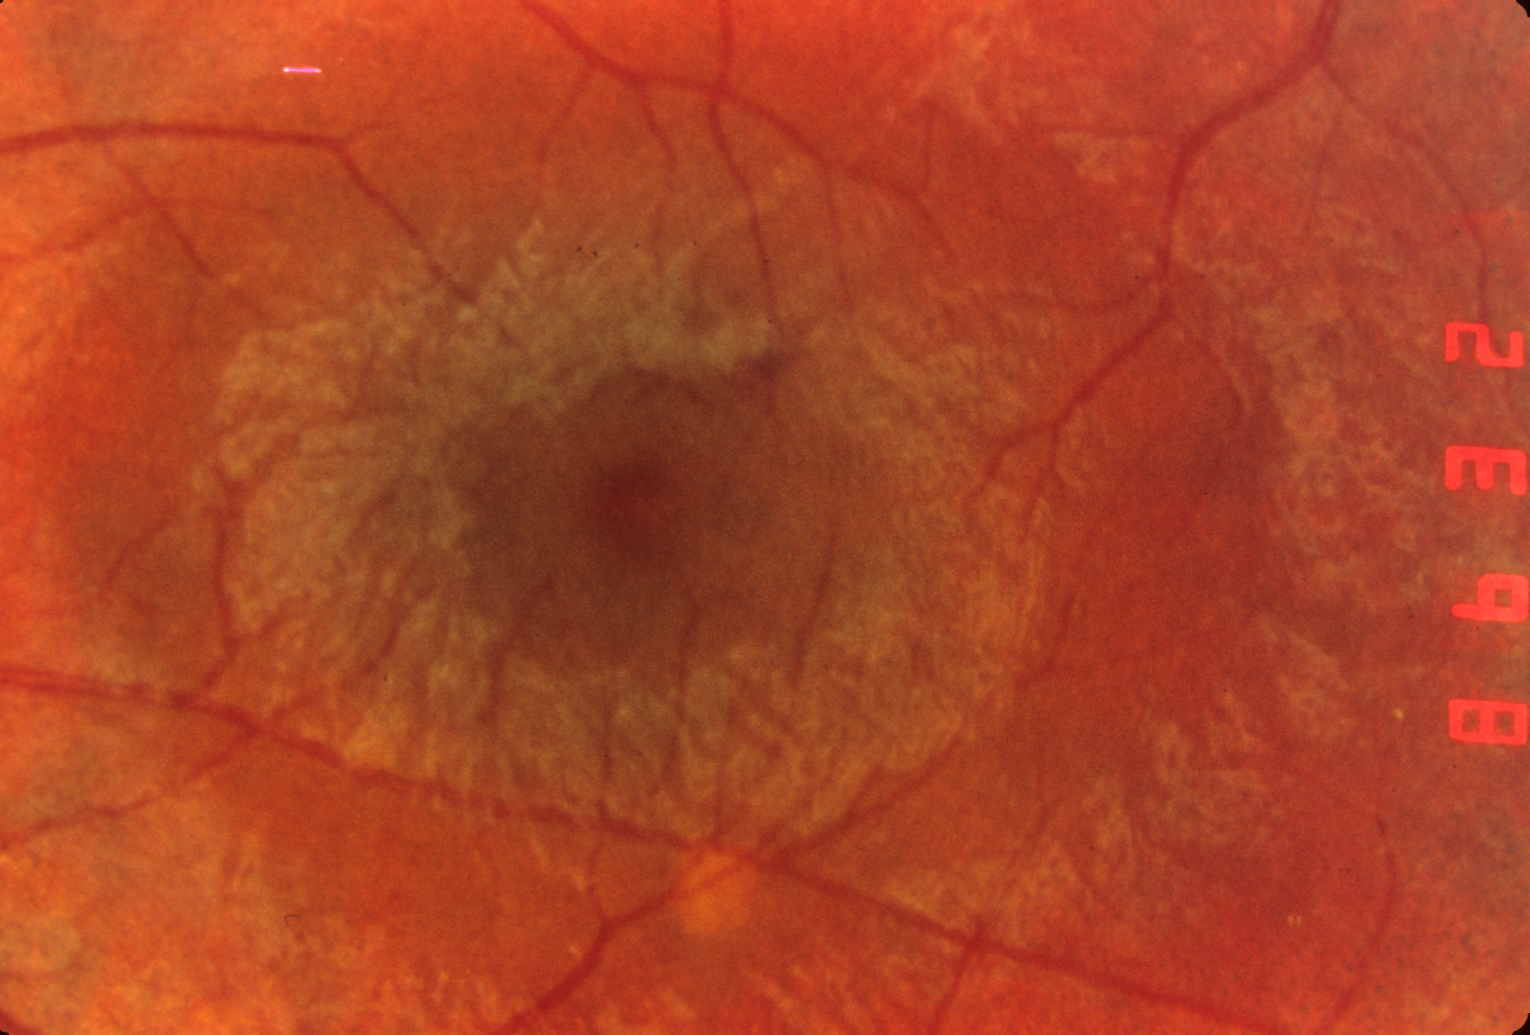 Macula in Usher syndrome